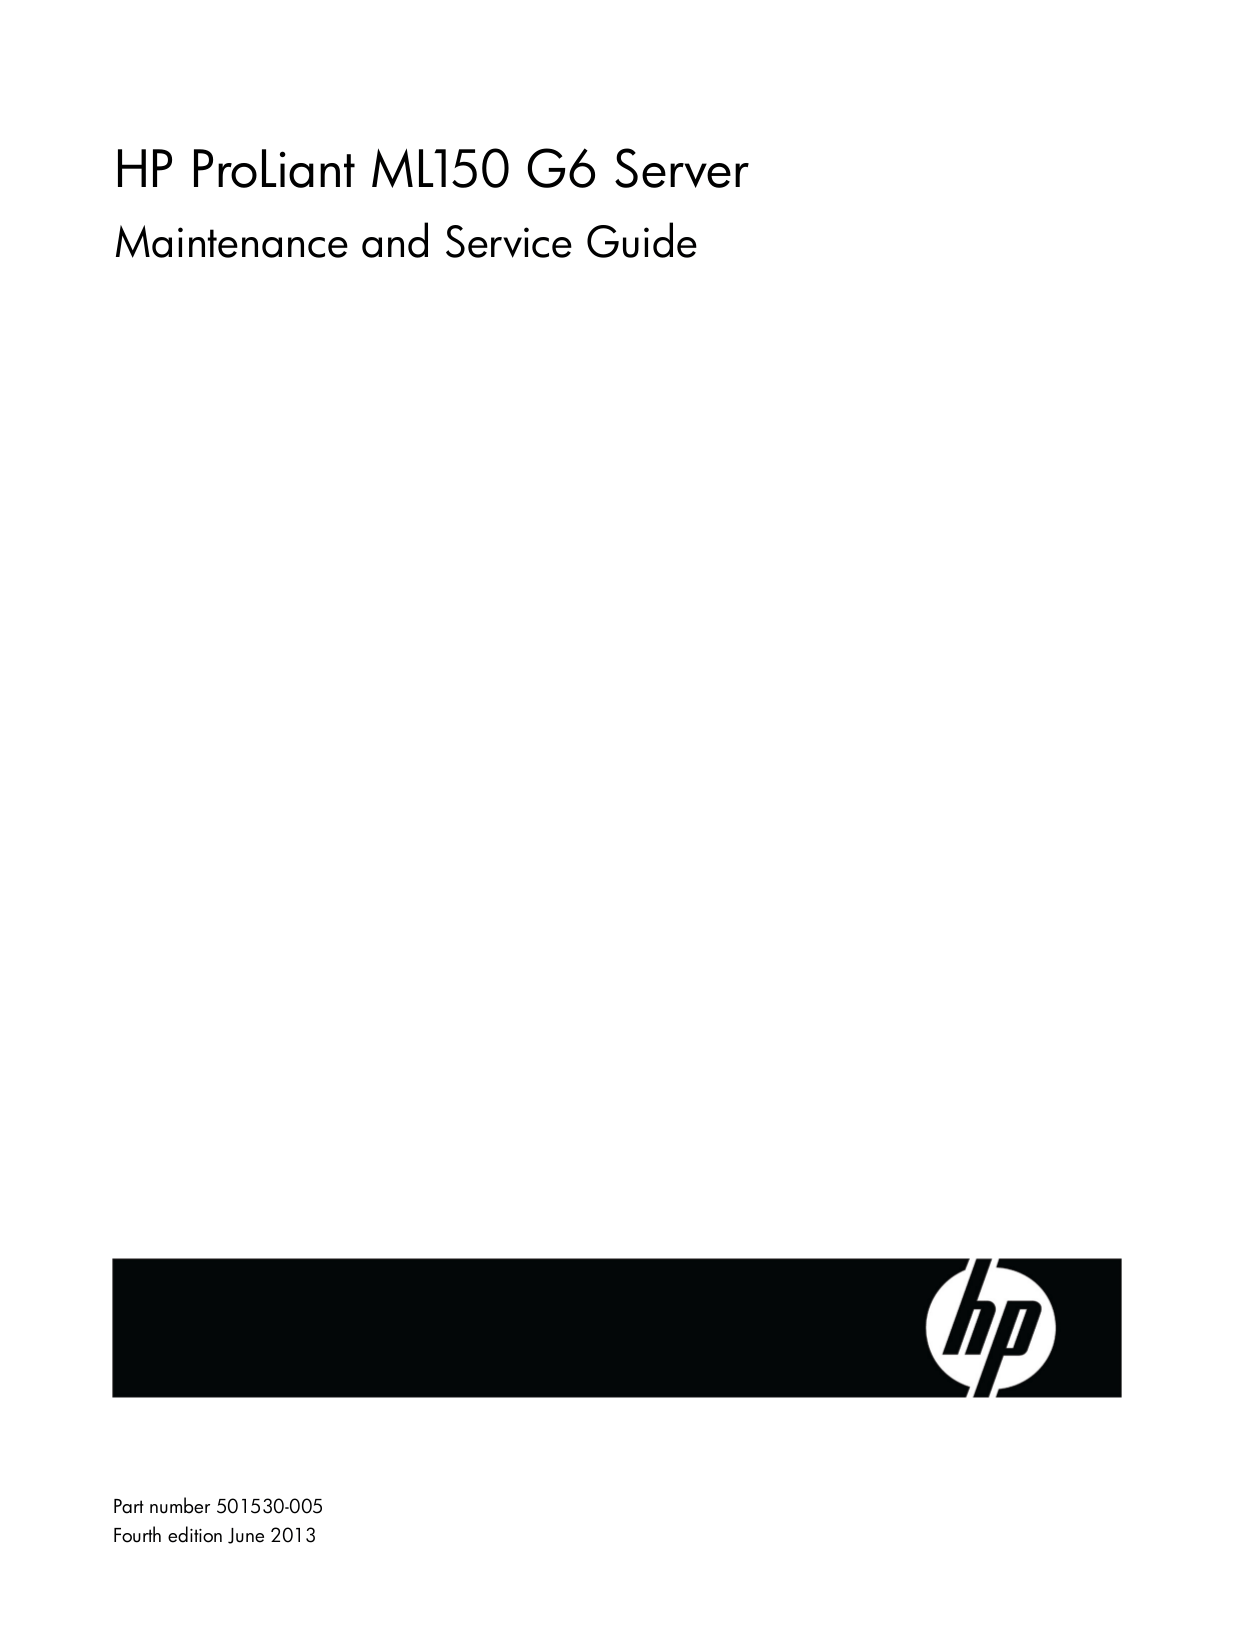 Download free pdf for HP ProLiant ML150 Servers Other manual